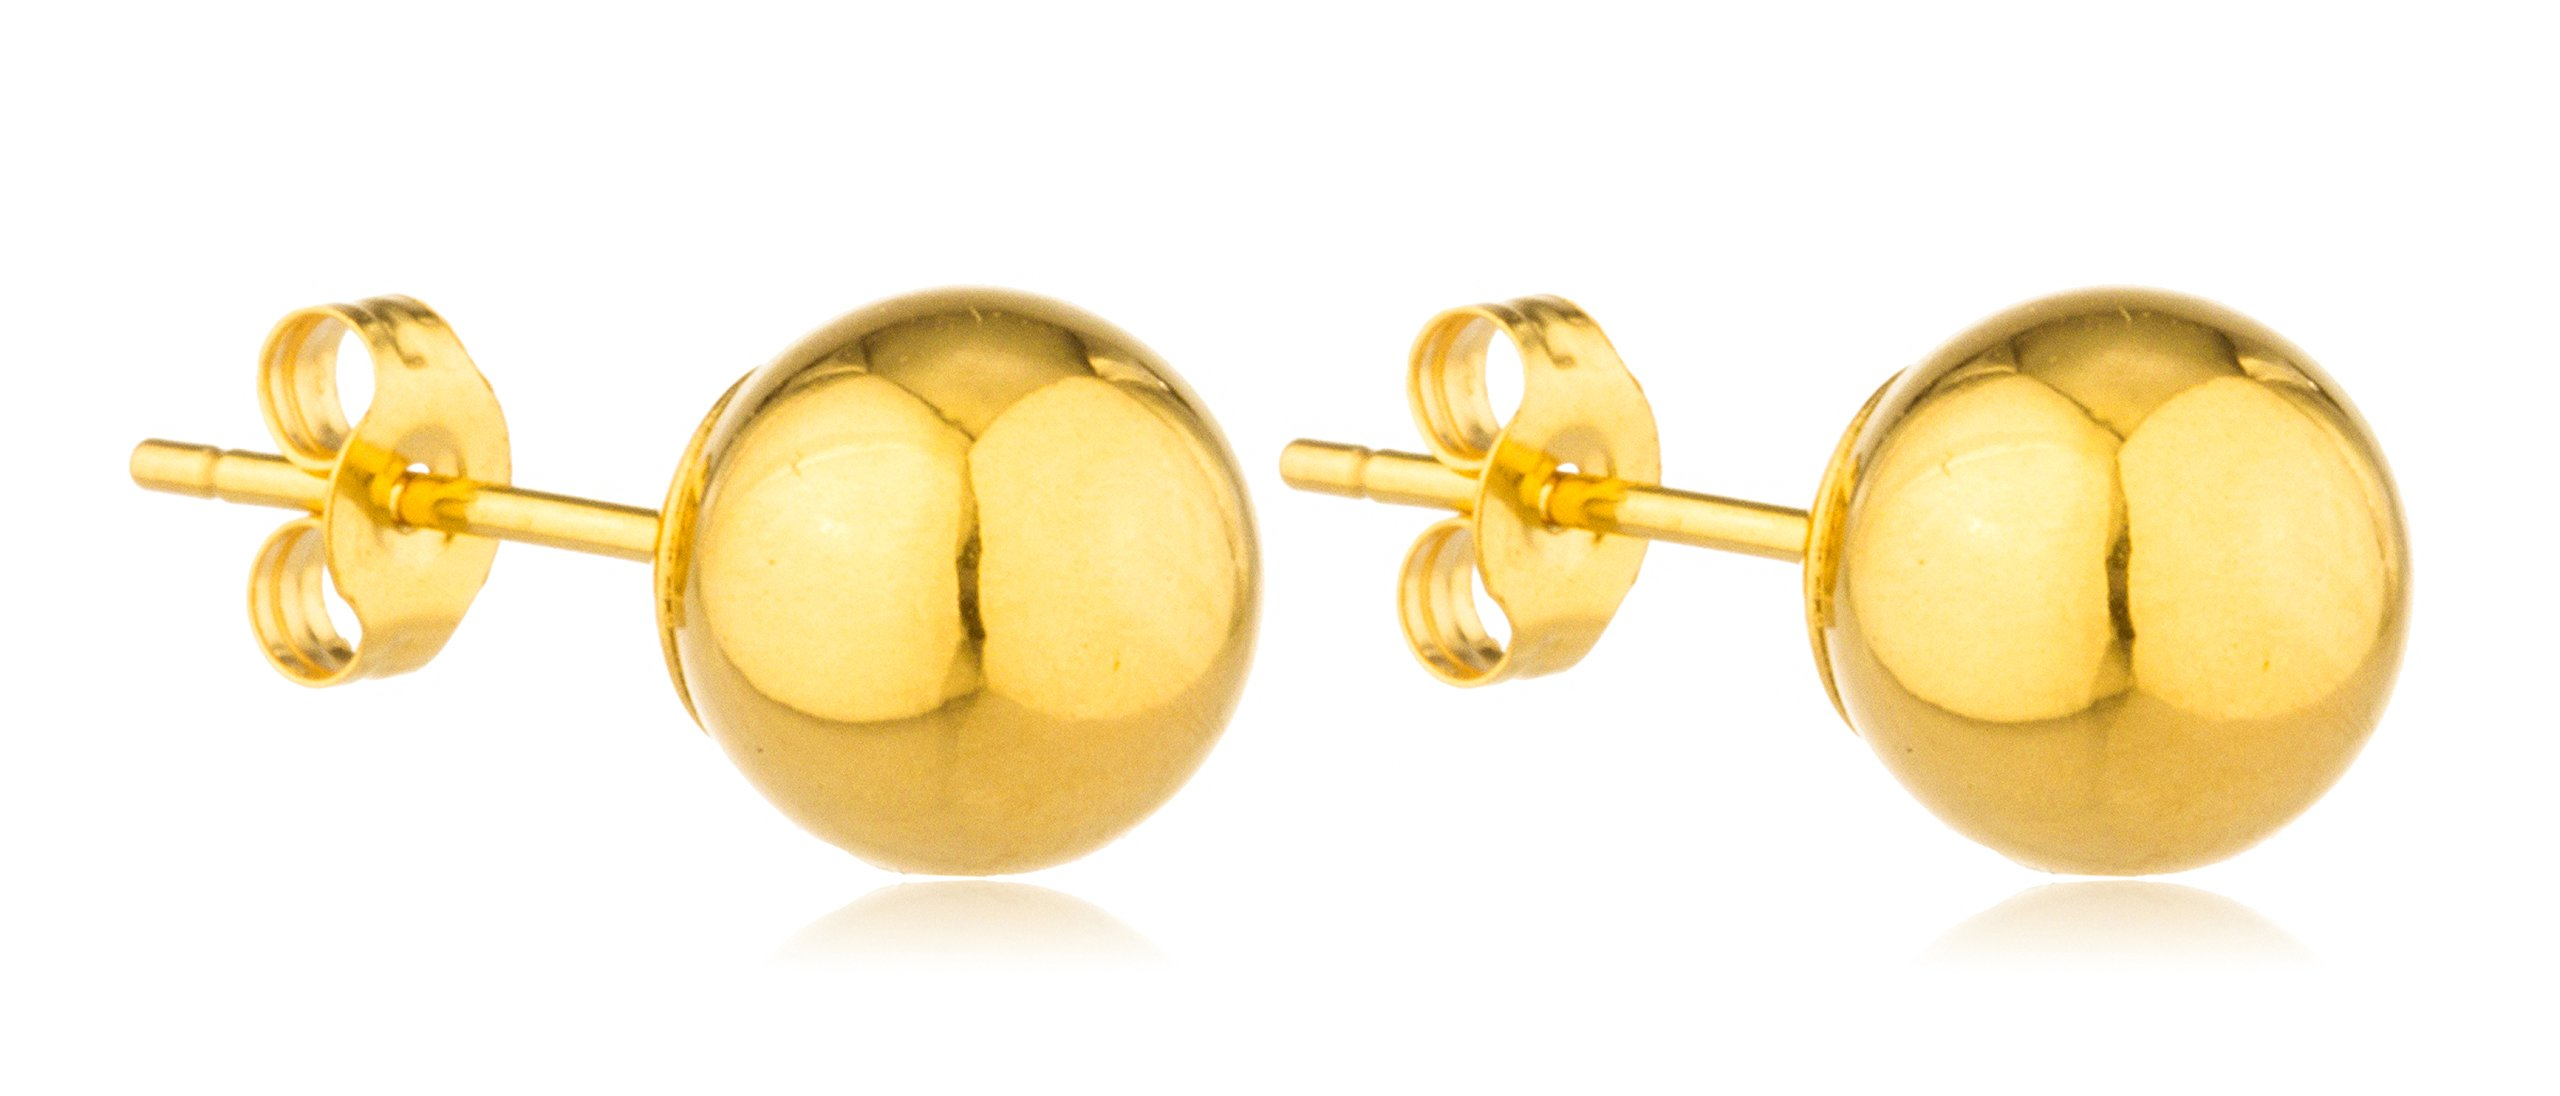 14K Gold Ball Earrings with Matching 14k Pushbacks - All Sizes and Colors Ava..